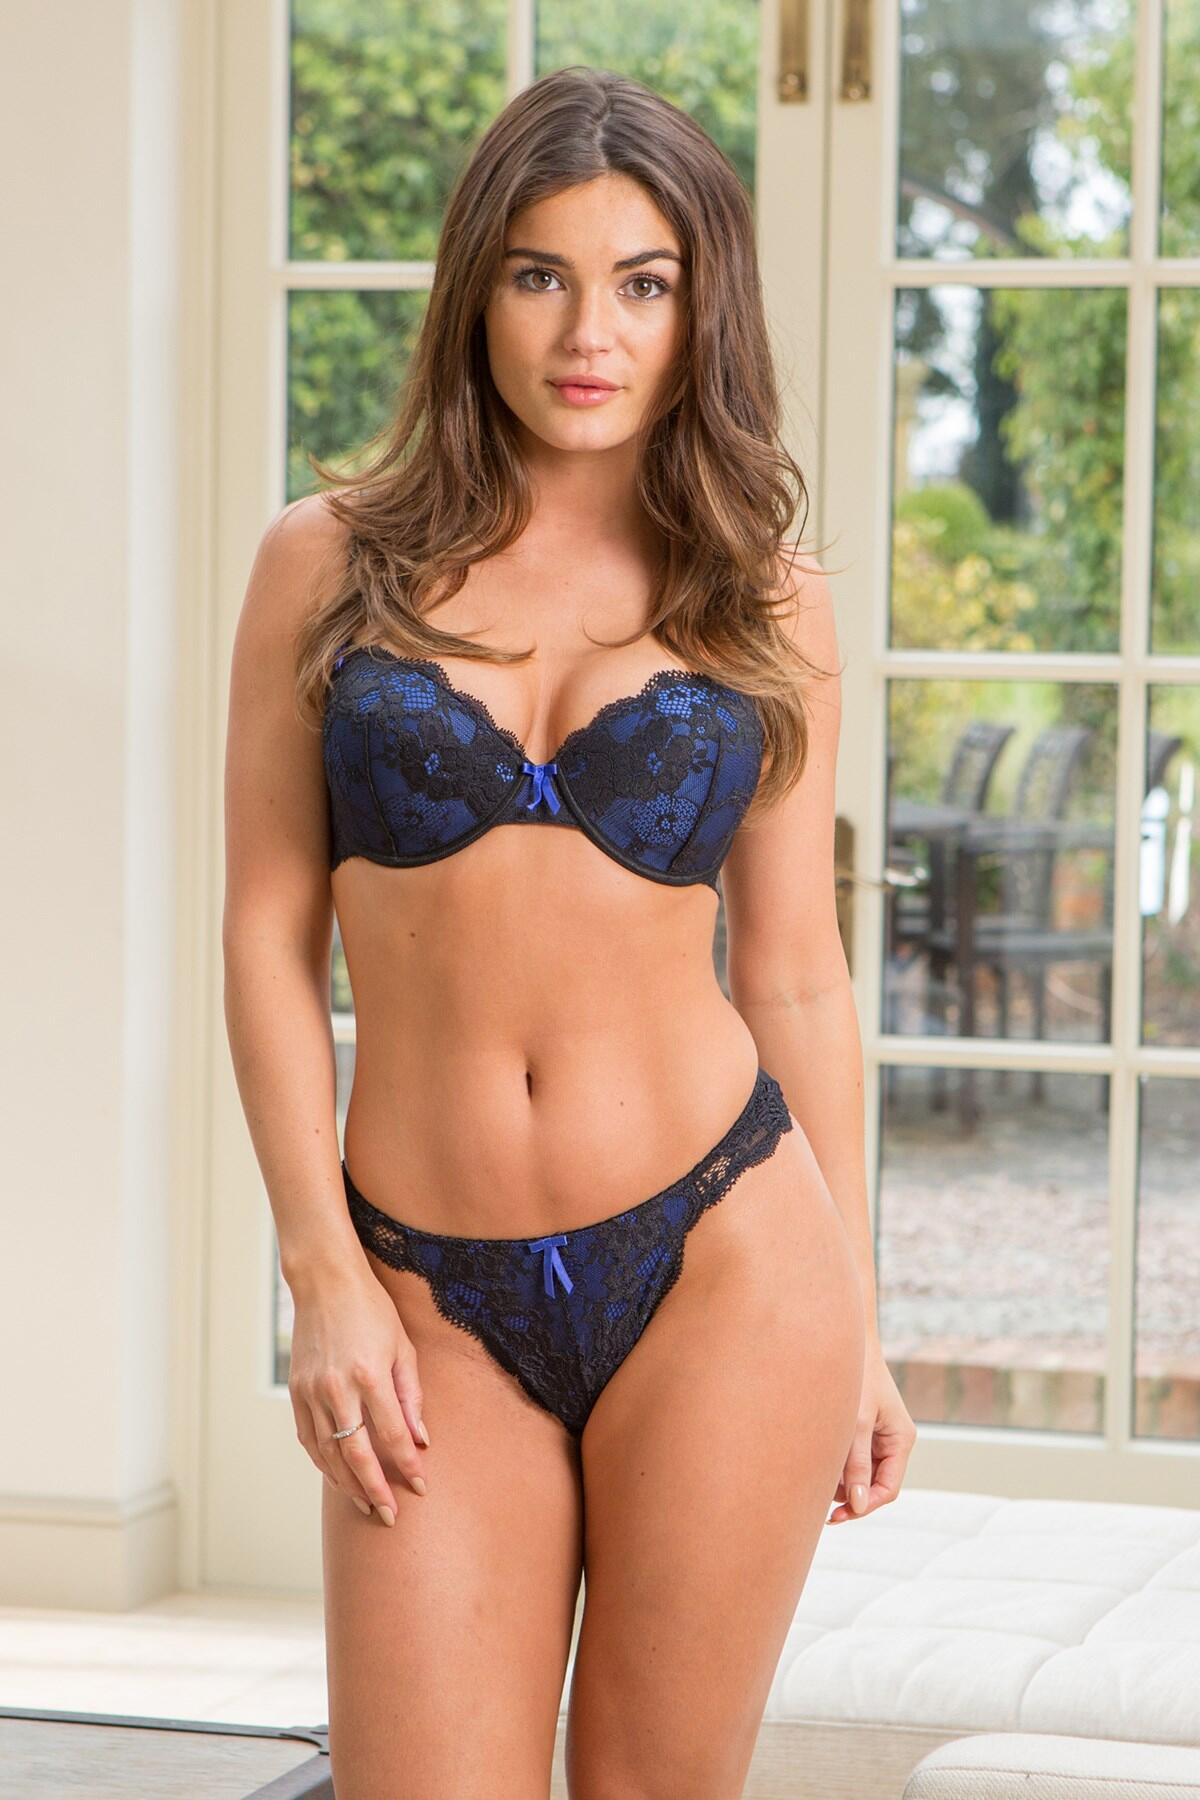 POUR Moi Amour padded bra PM-1500 Coral 32C